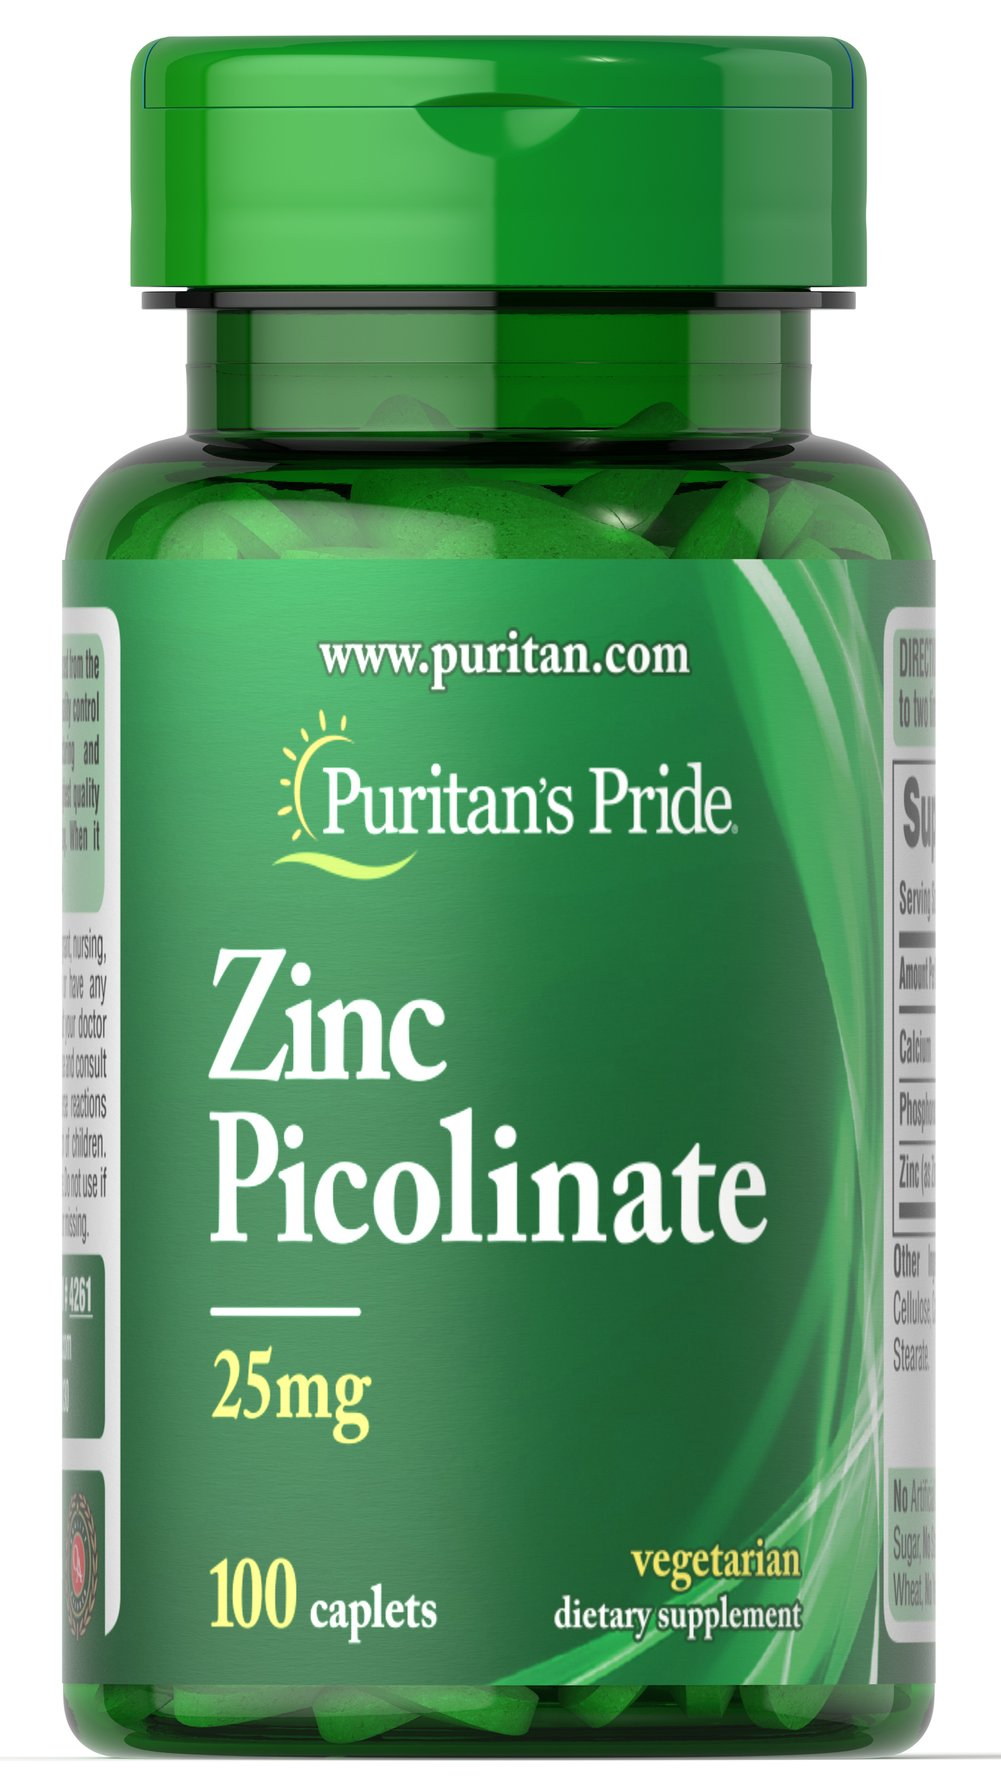 Zinc Picolinate 25 mg <p>Important for Immune System Health**</p><p>Zinc is essential for cell division and growth and assists in the formation of DNA, the cell's genetic material.** Zinc is also important for immune system health and energy metabolism.**</p> 100 Caplets 25 mg $9.29